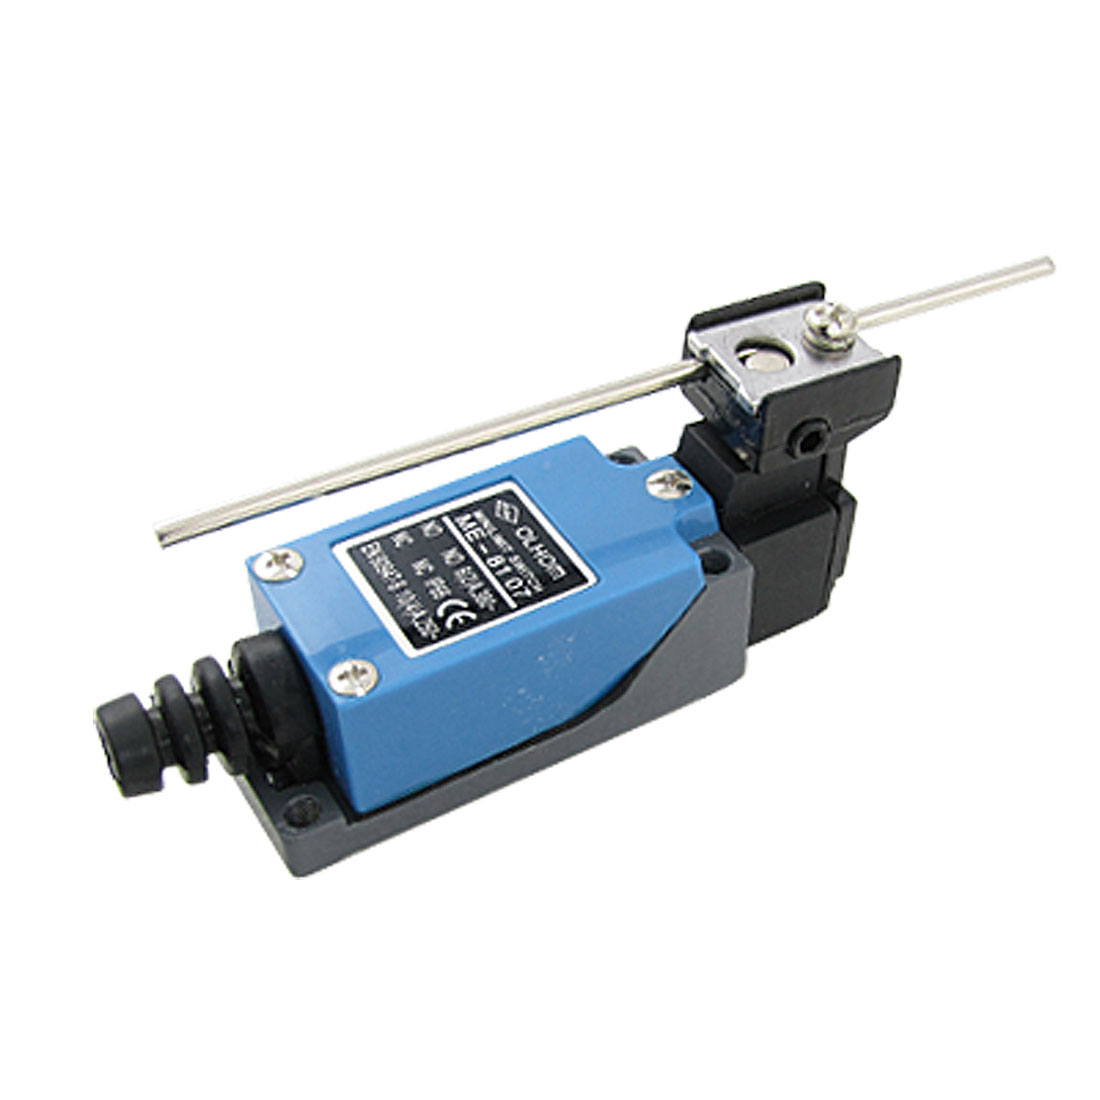 ME-8107 Adjustable Rod Lever Actuator Momentary Enclosed Limit Switch